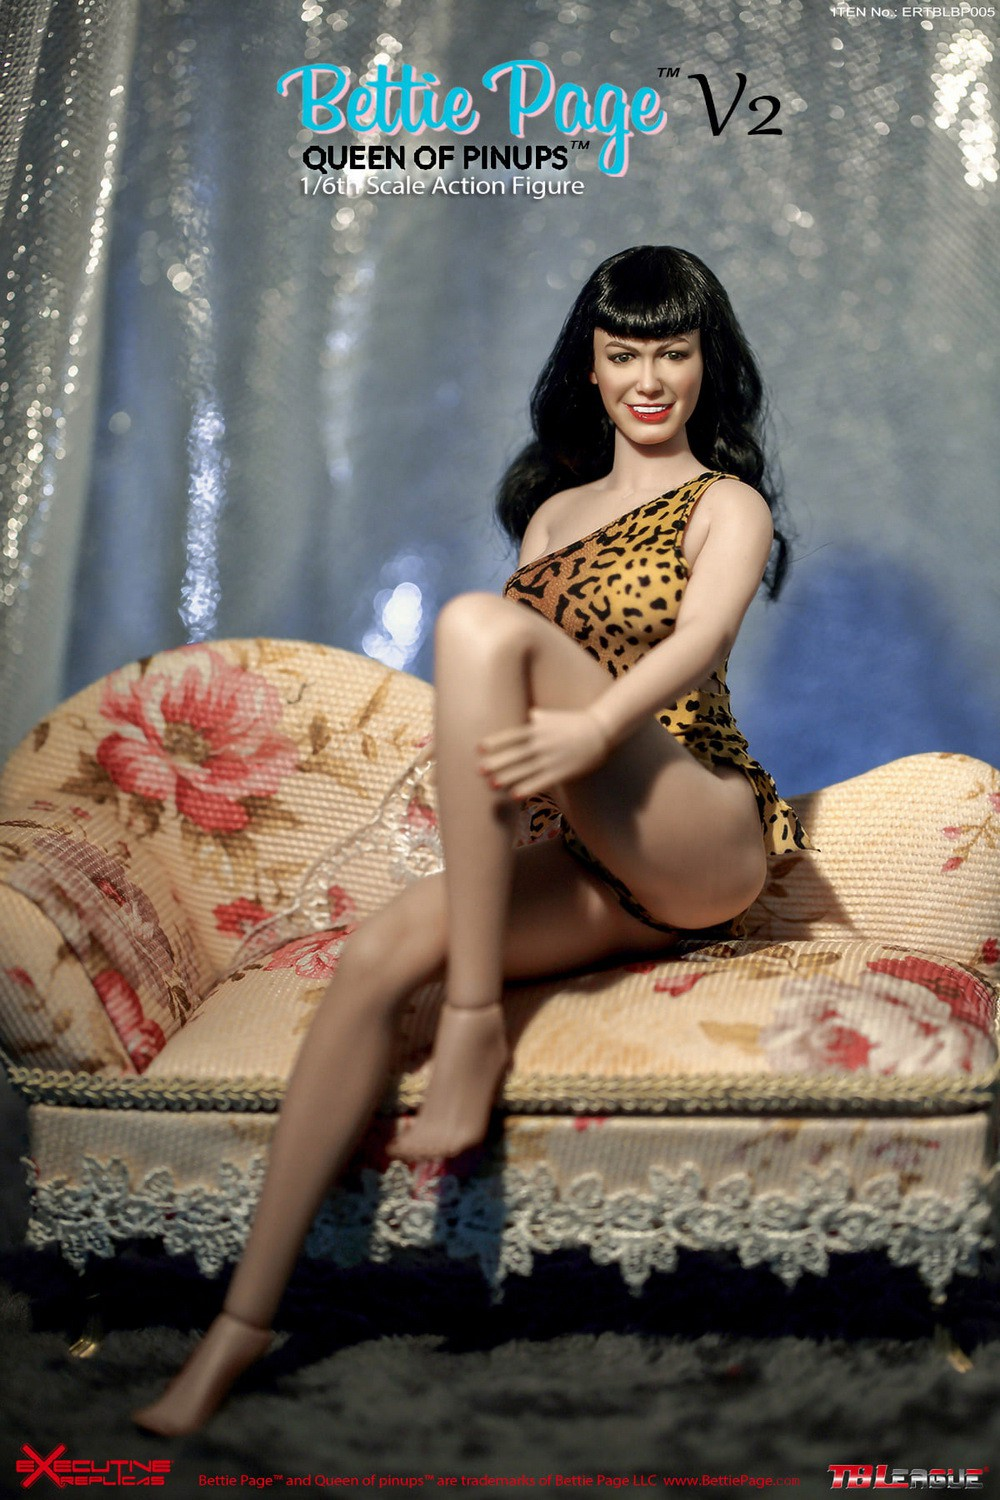 tbleague - NEW PRODUCT: Executive Replicas & TBLeague: 1/6 Queen of Pin-Ups, Betty Page/Bettie Page V2 action figure 08344010